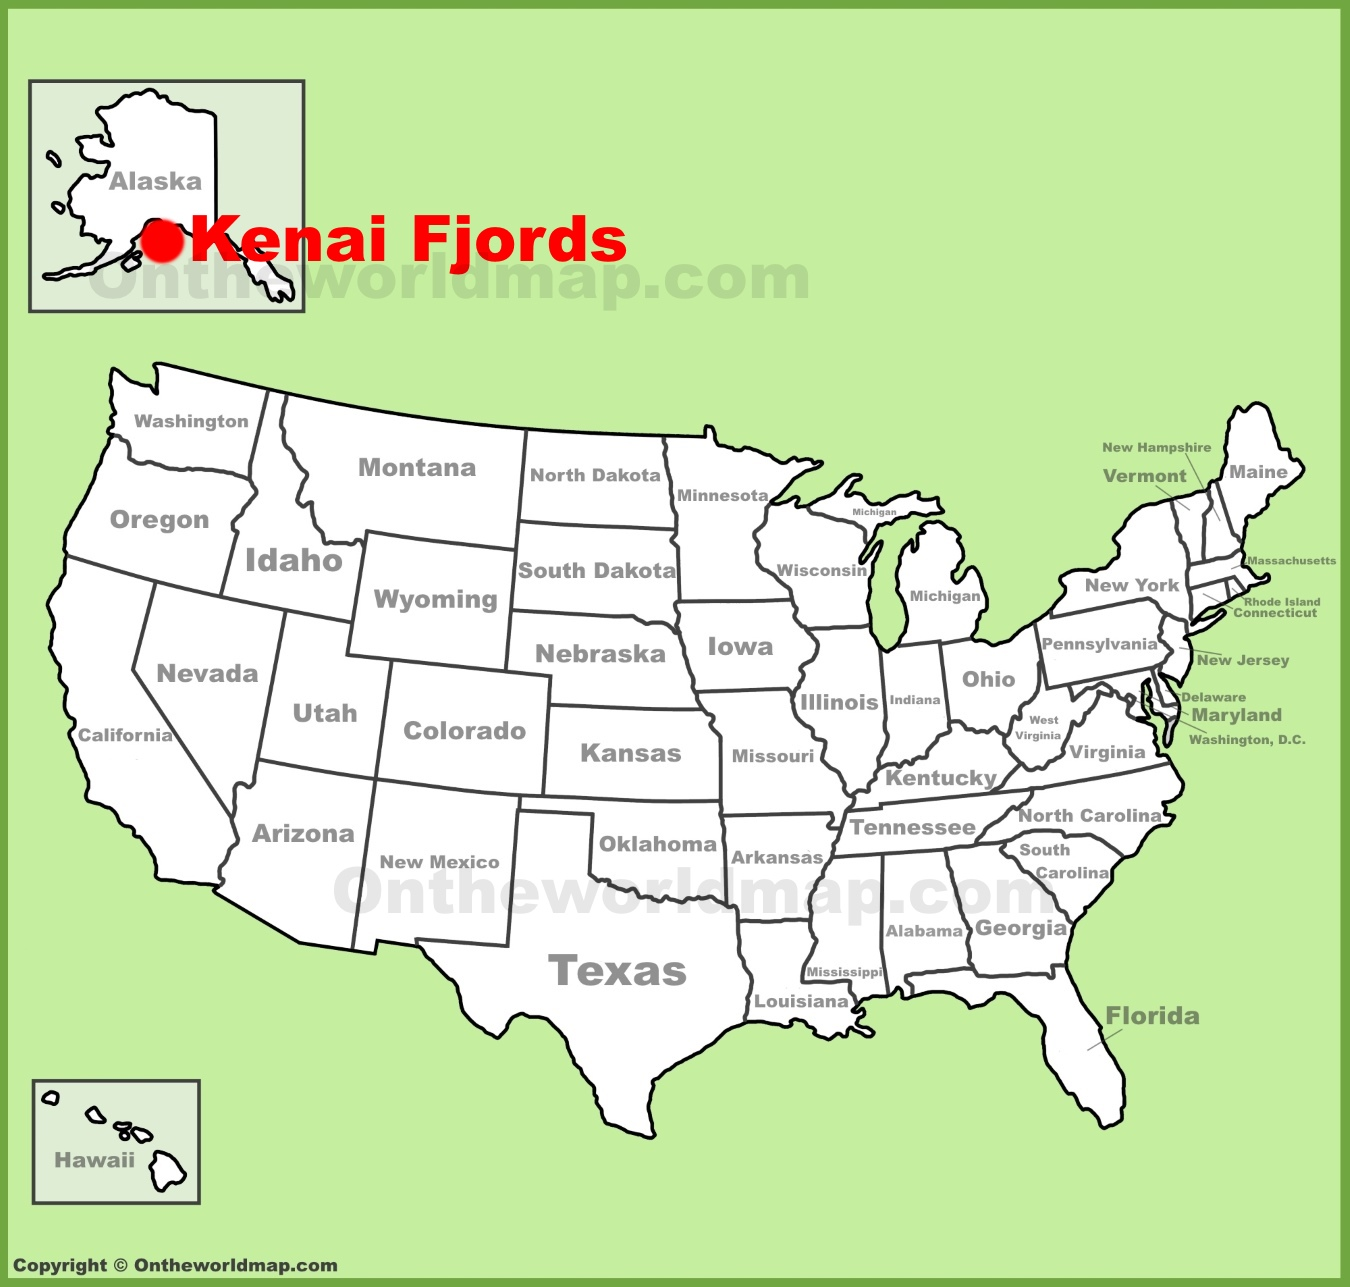 Kenai Fjords National Park Maps USA Maps of Kenai Fjords